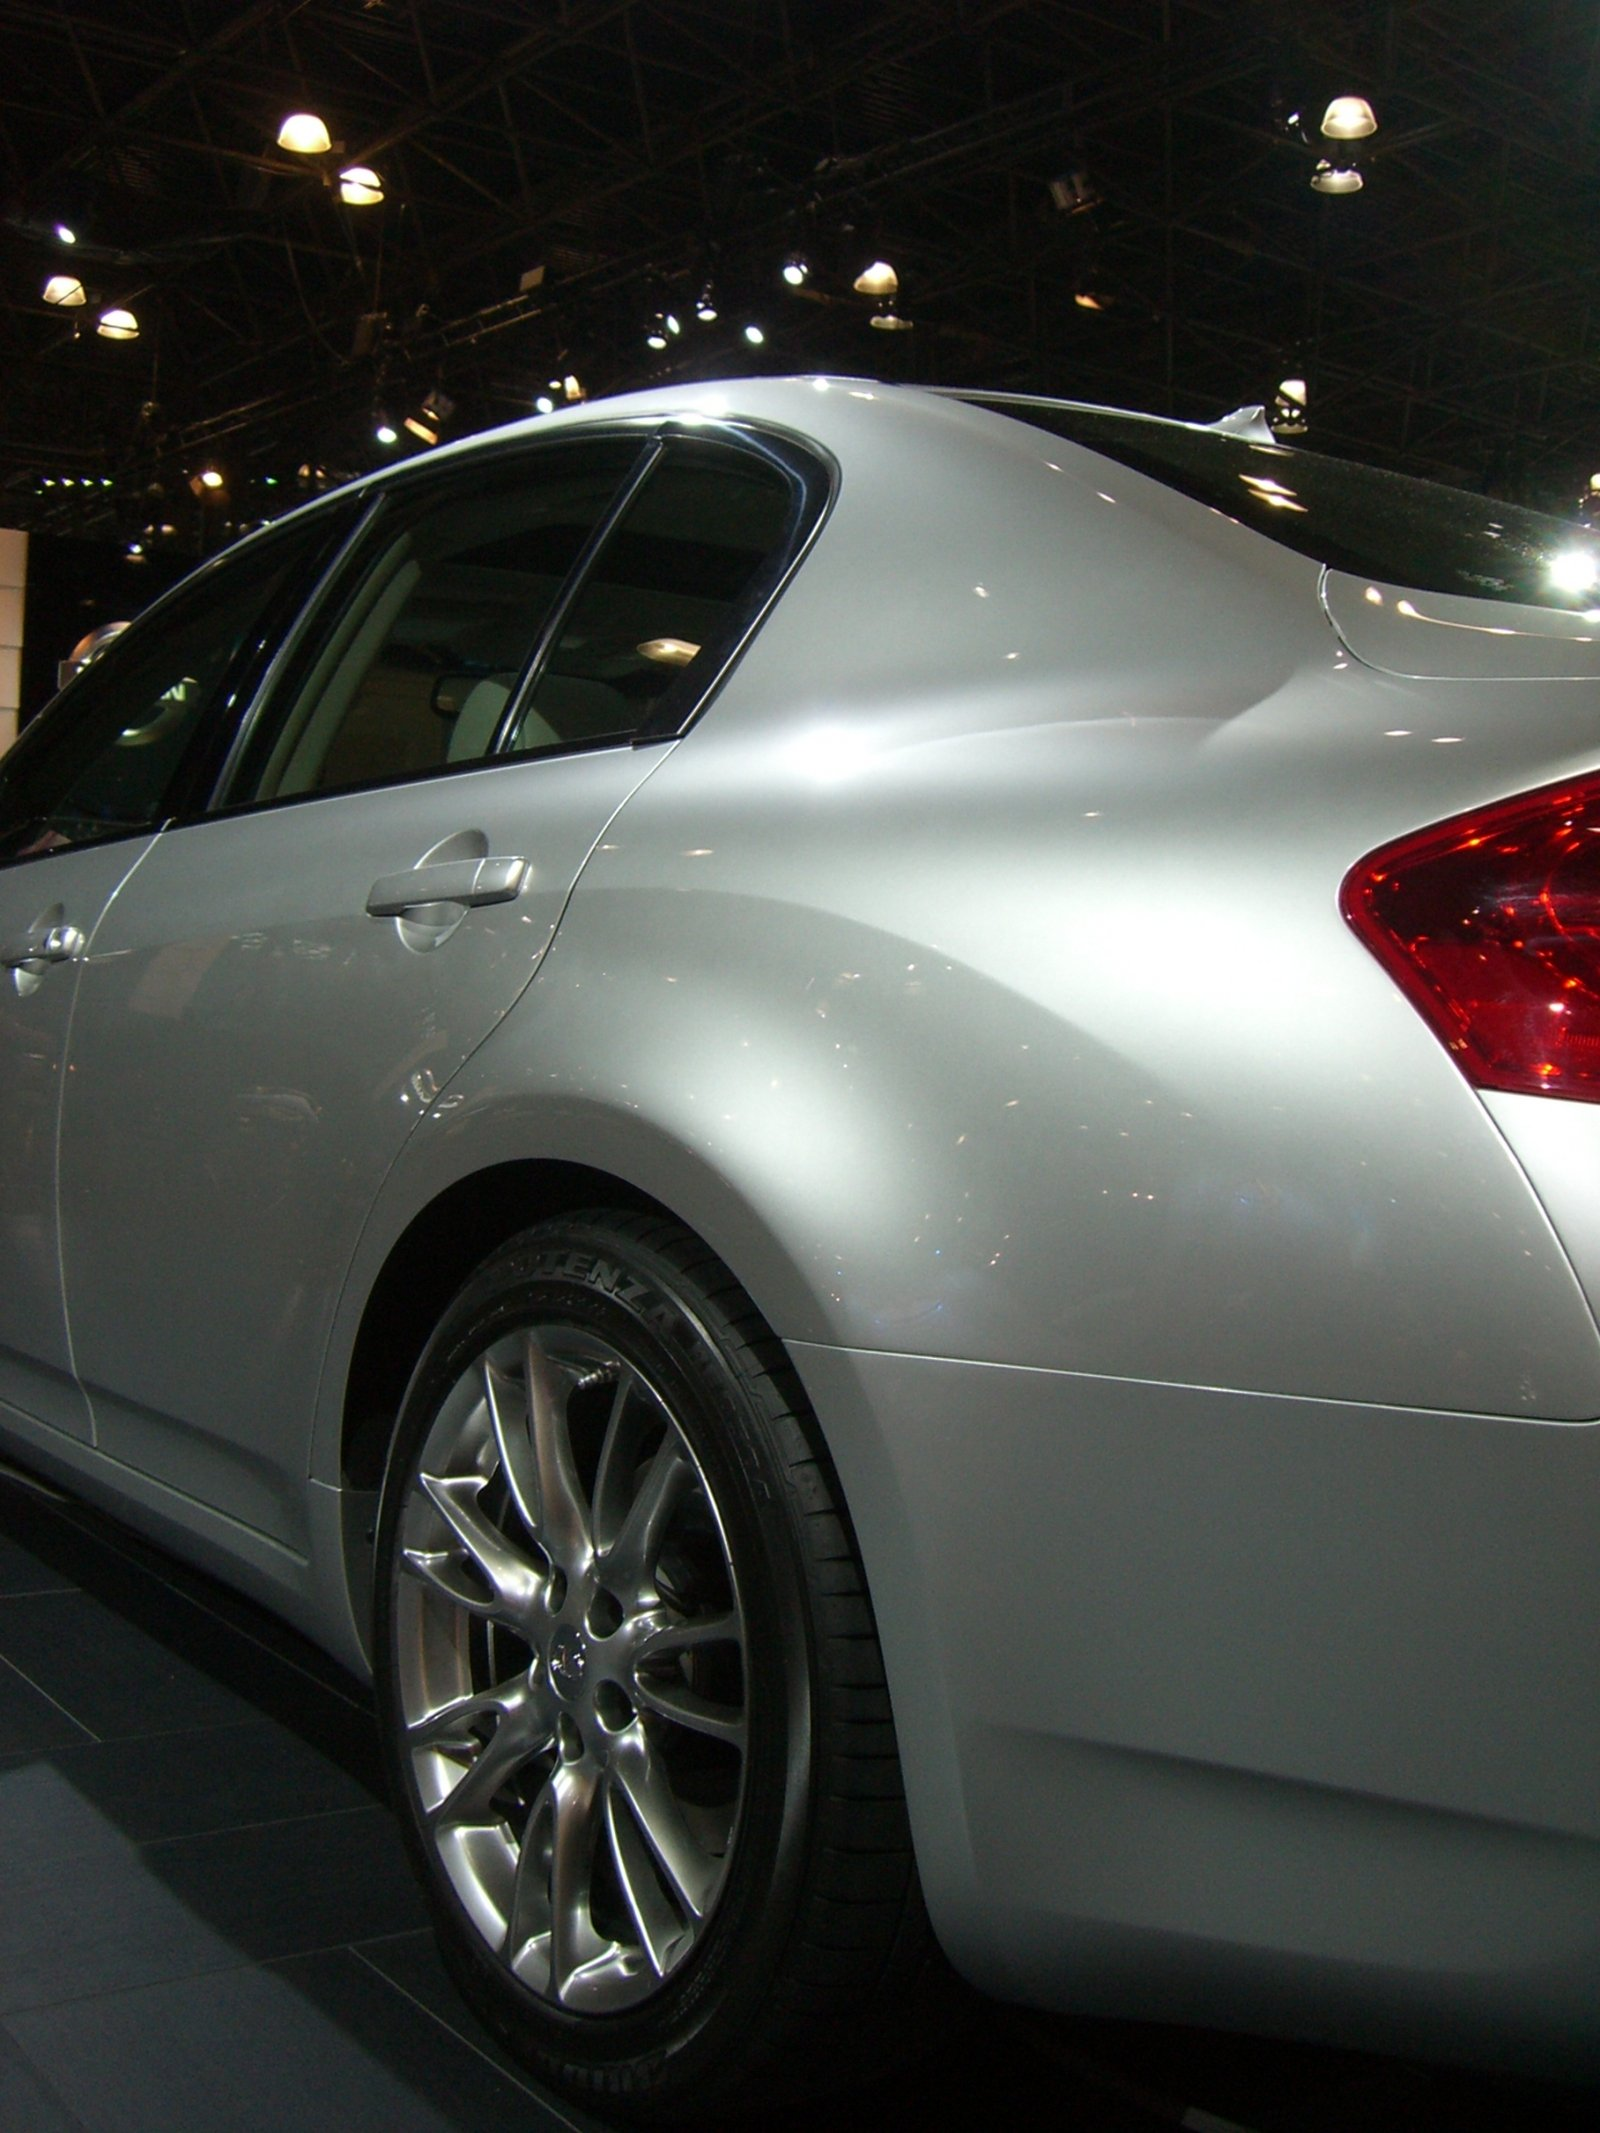 2007 infiniti g35 picture 53636 car review top speed. Black Bedroom Furniture Sets. Home Design Ideas